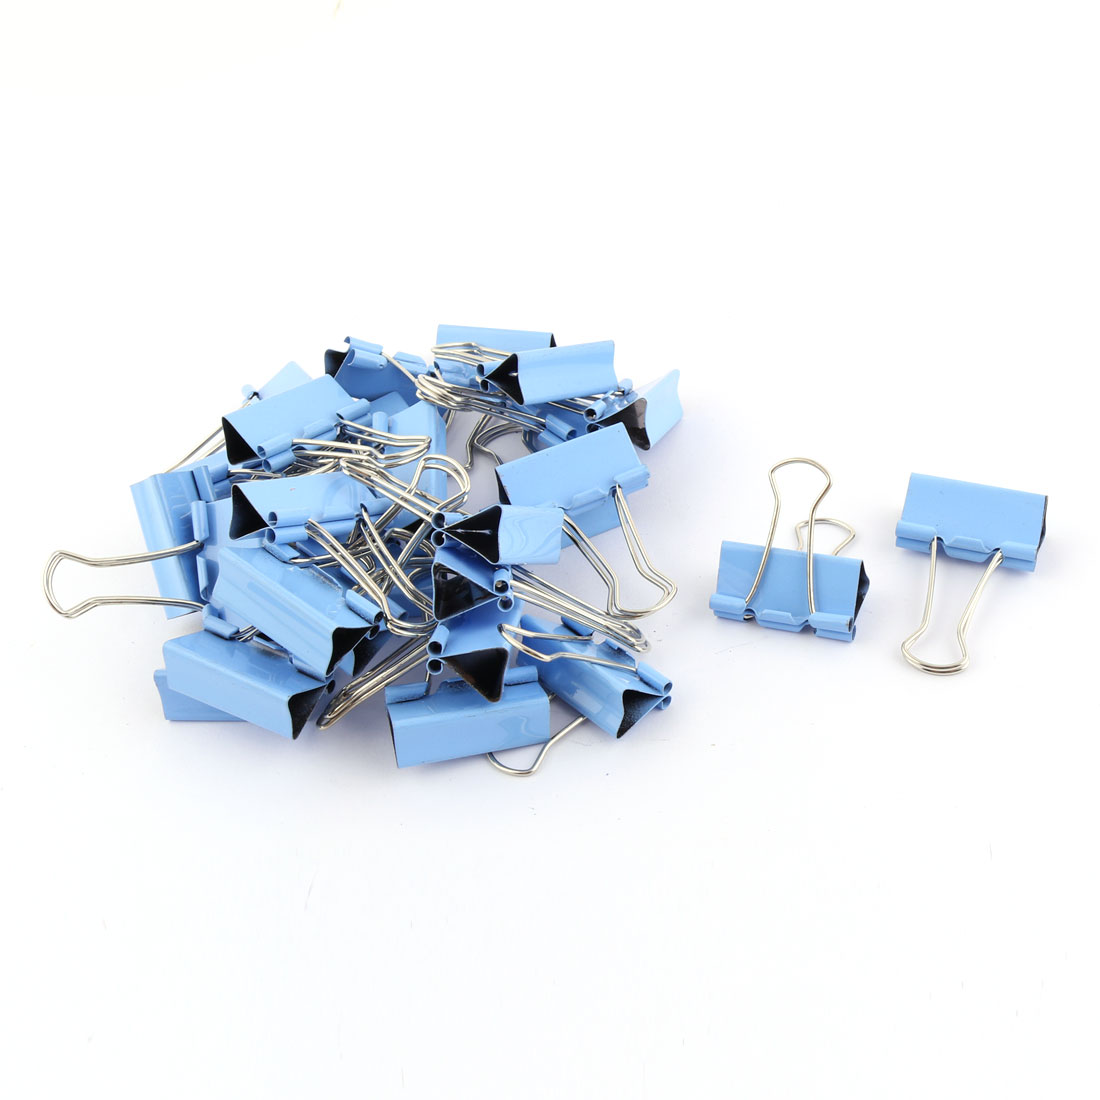 School Office Home Metal Document Test Paper Organizer Binder Clips Blue 28 Pcs